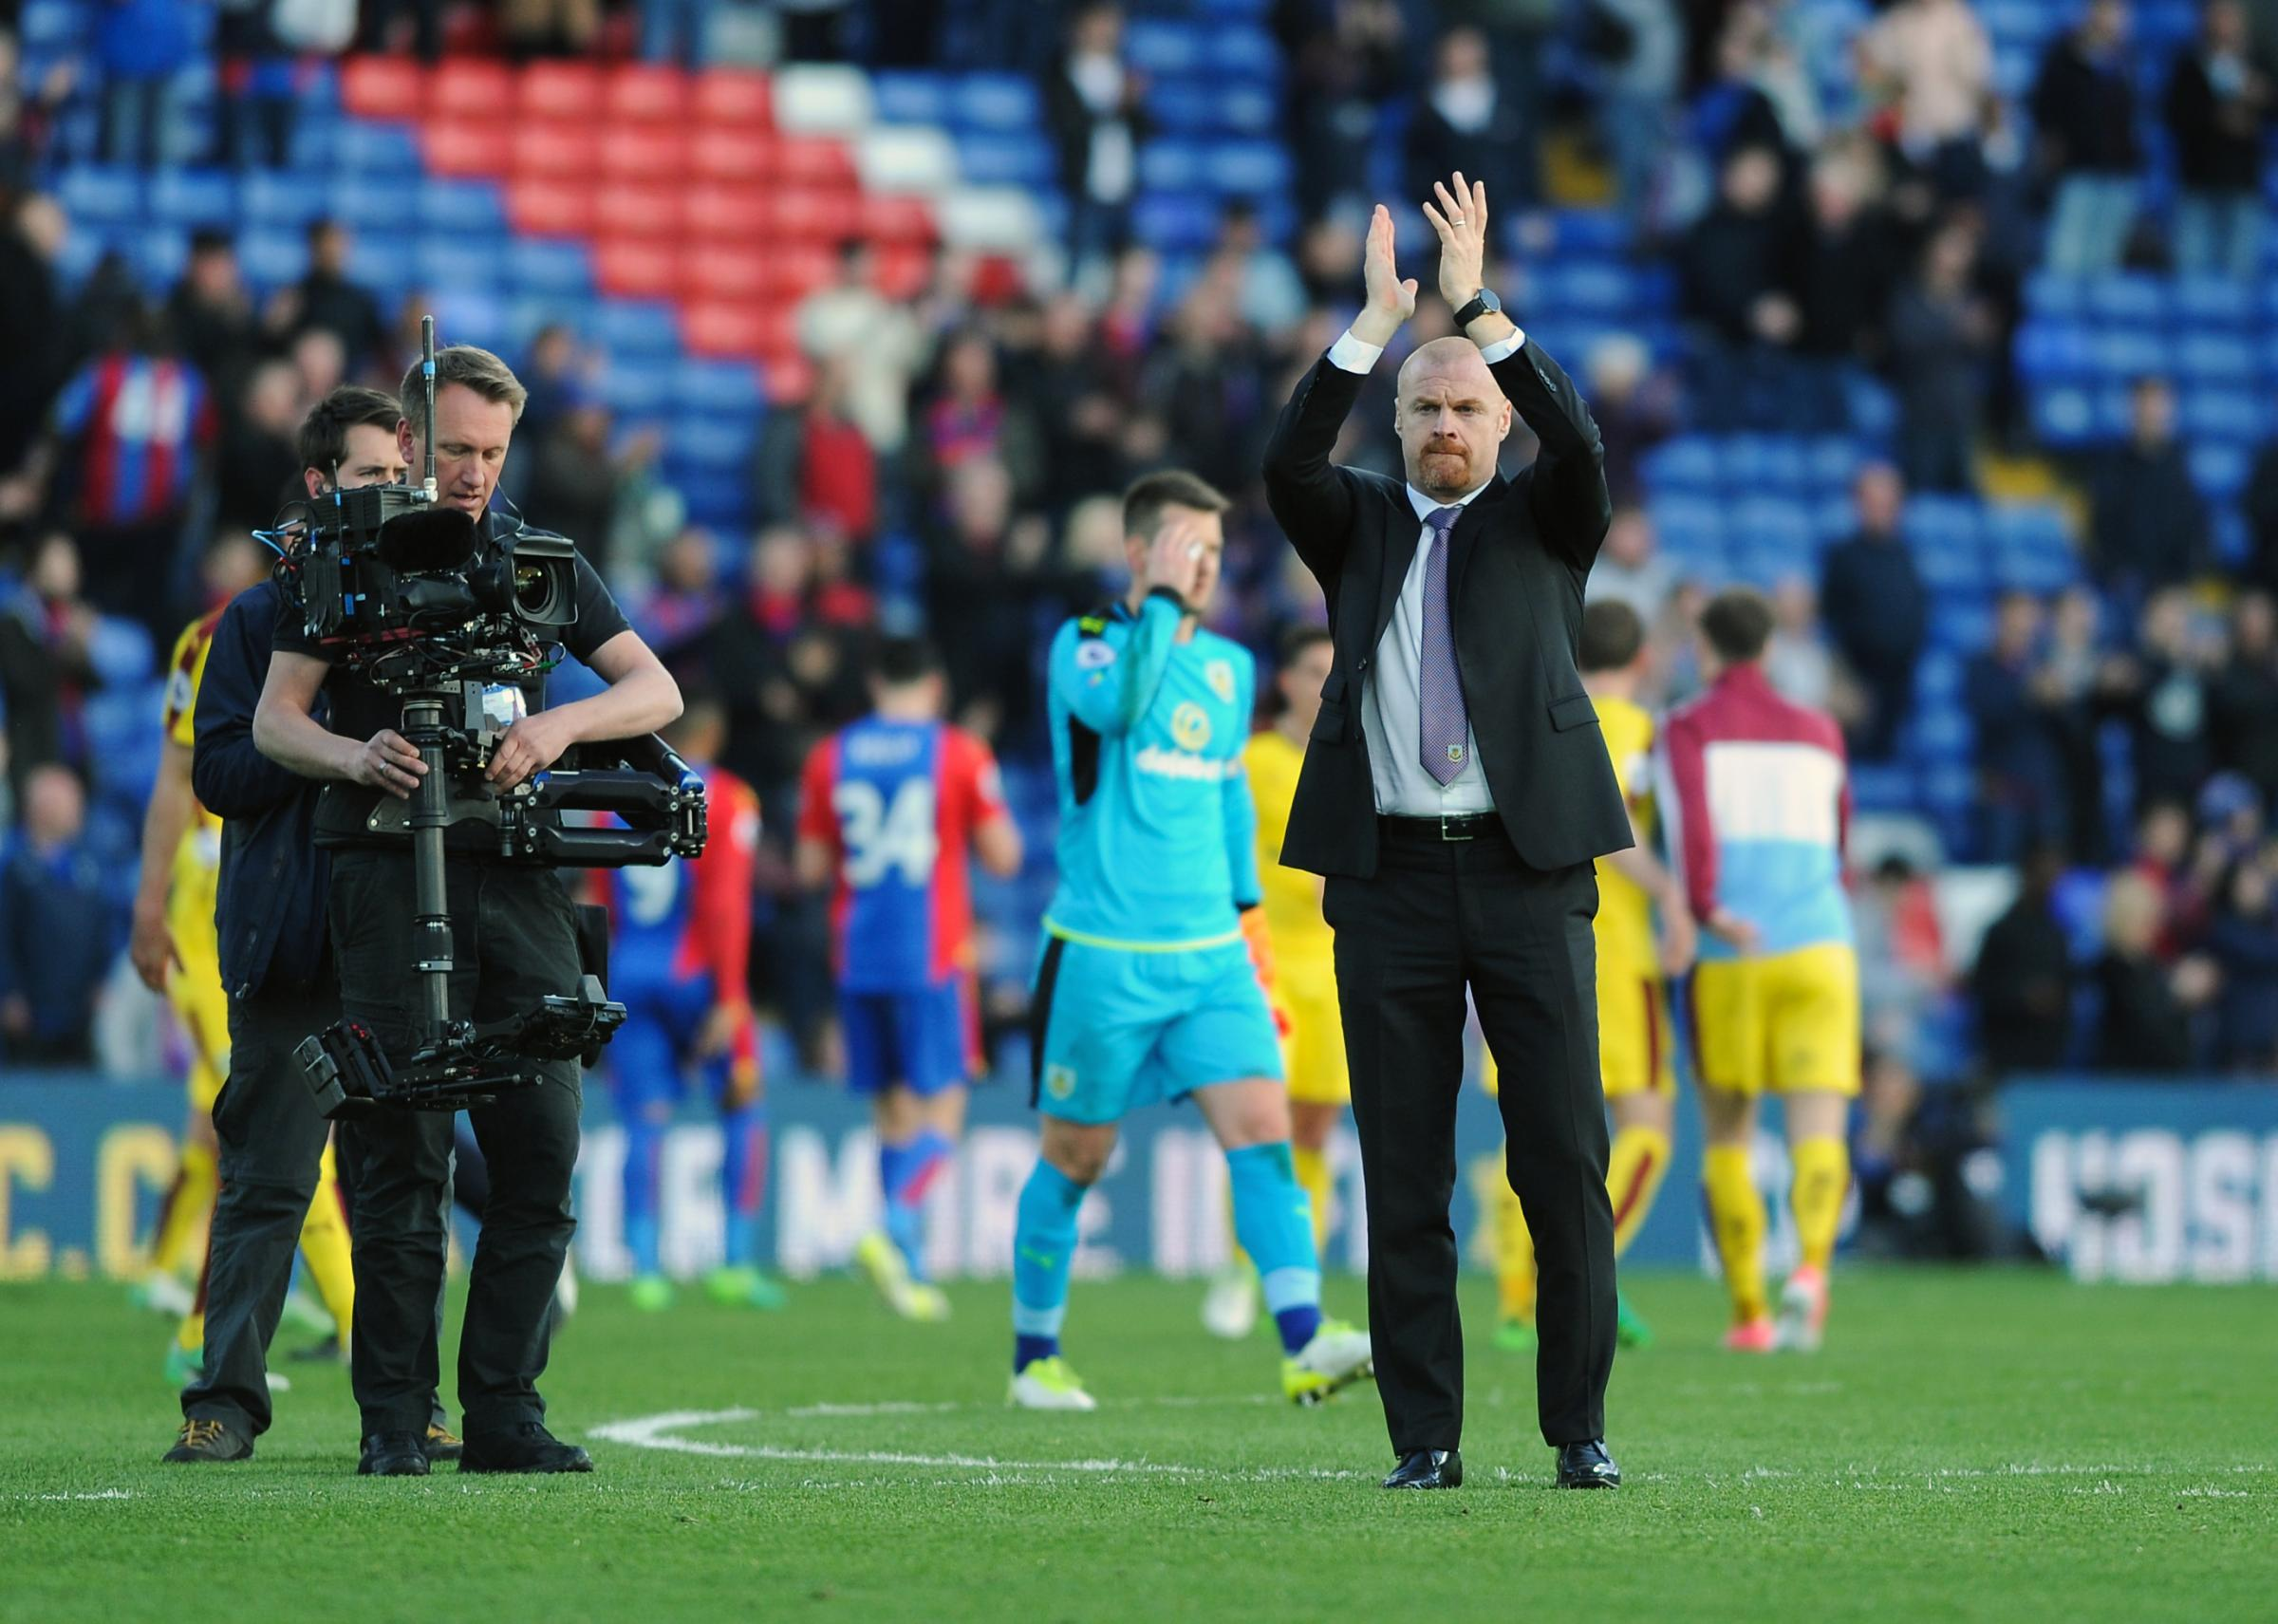 Sean Dyche applauds the Burnley fans after the win at Crystal Palace last season